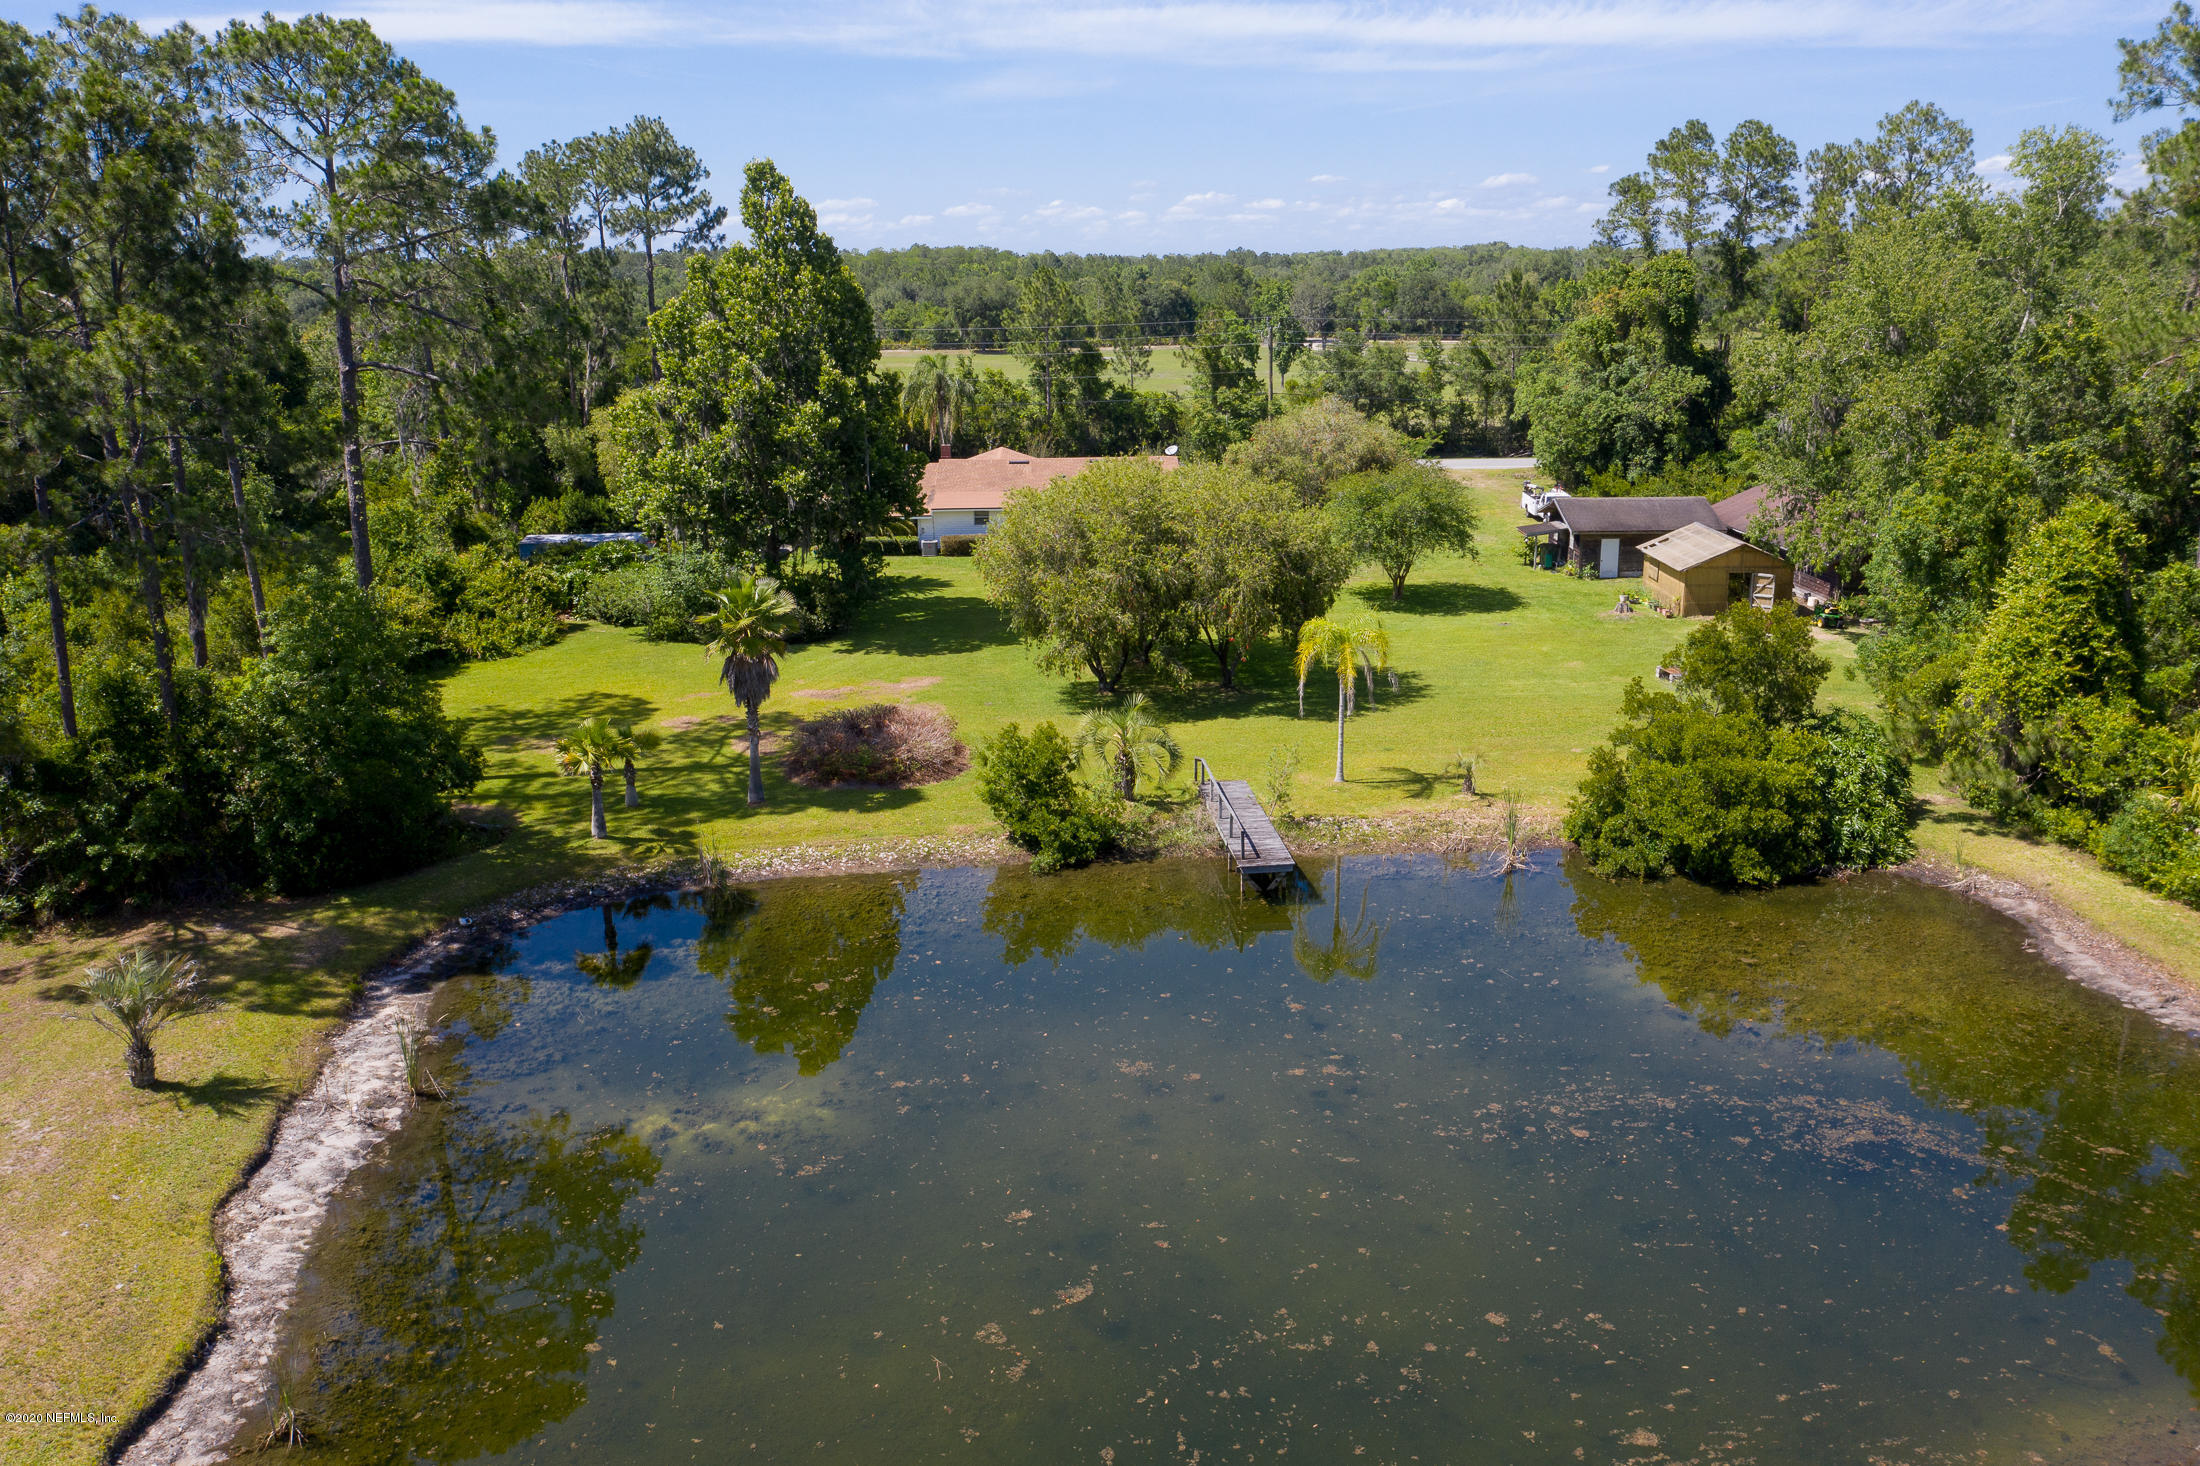 8055 CR 208, ST AUGUSTINE, FLORIDA 32092, 3 Bedrooms Bedrooms, ,2 BathroomsBathrooms,Residential,For sale,CR 208,1053959